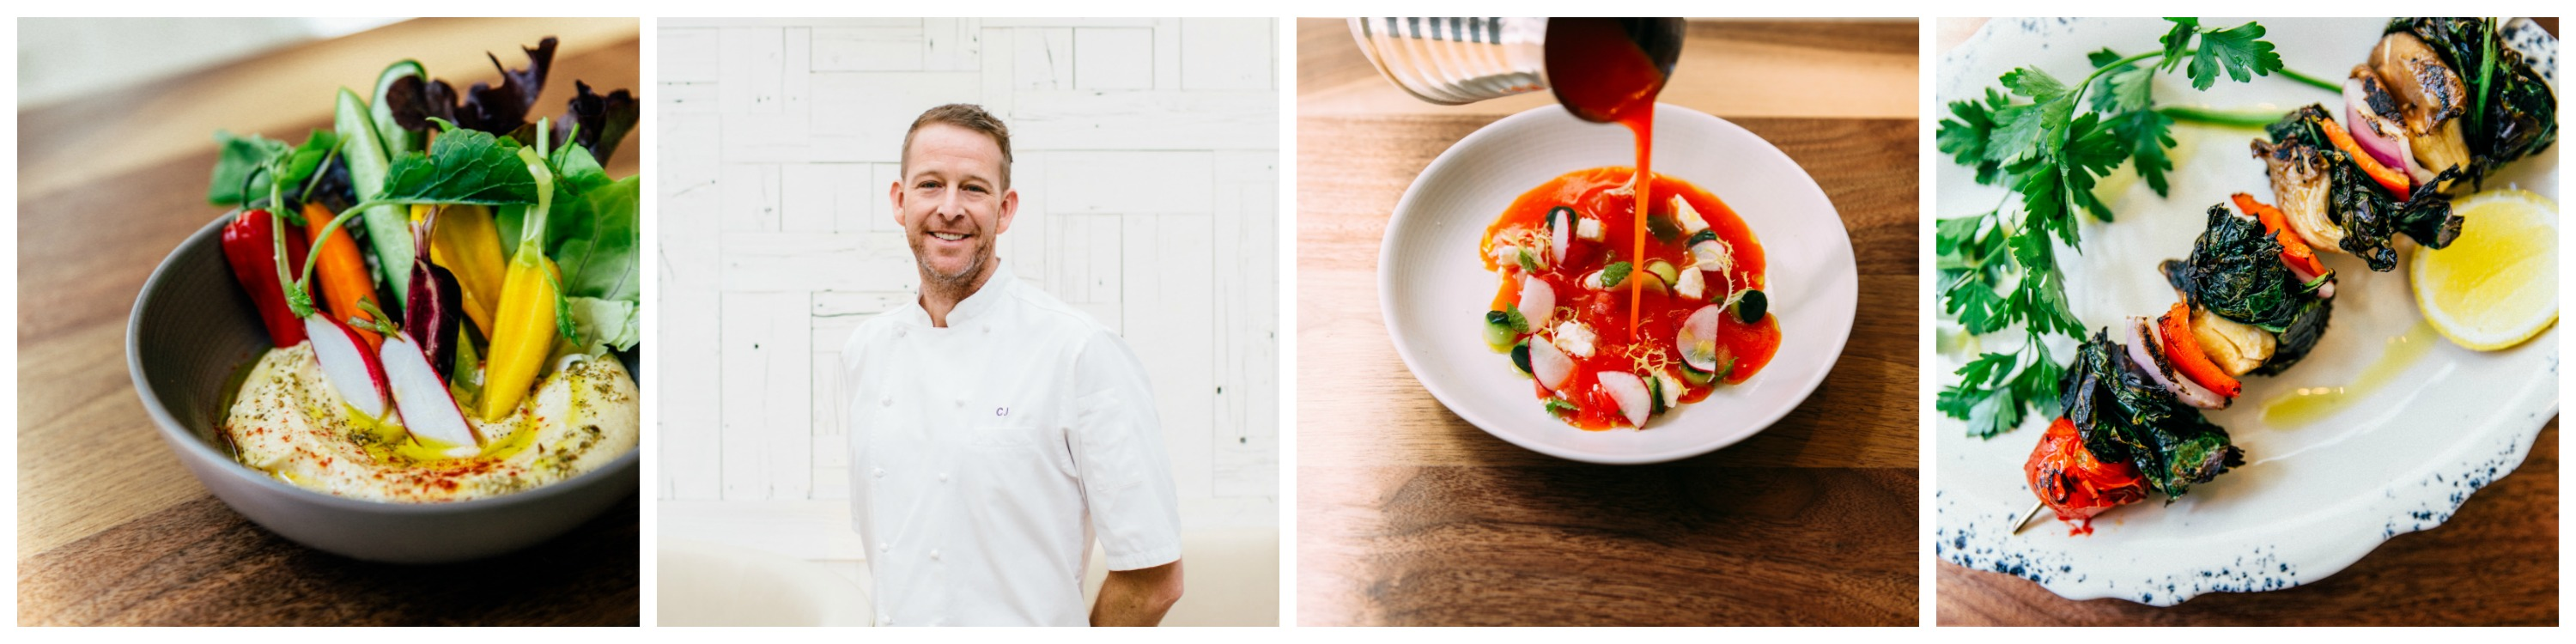 Collage of food photos and headshot of Chef CJ at Ema